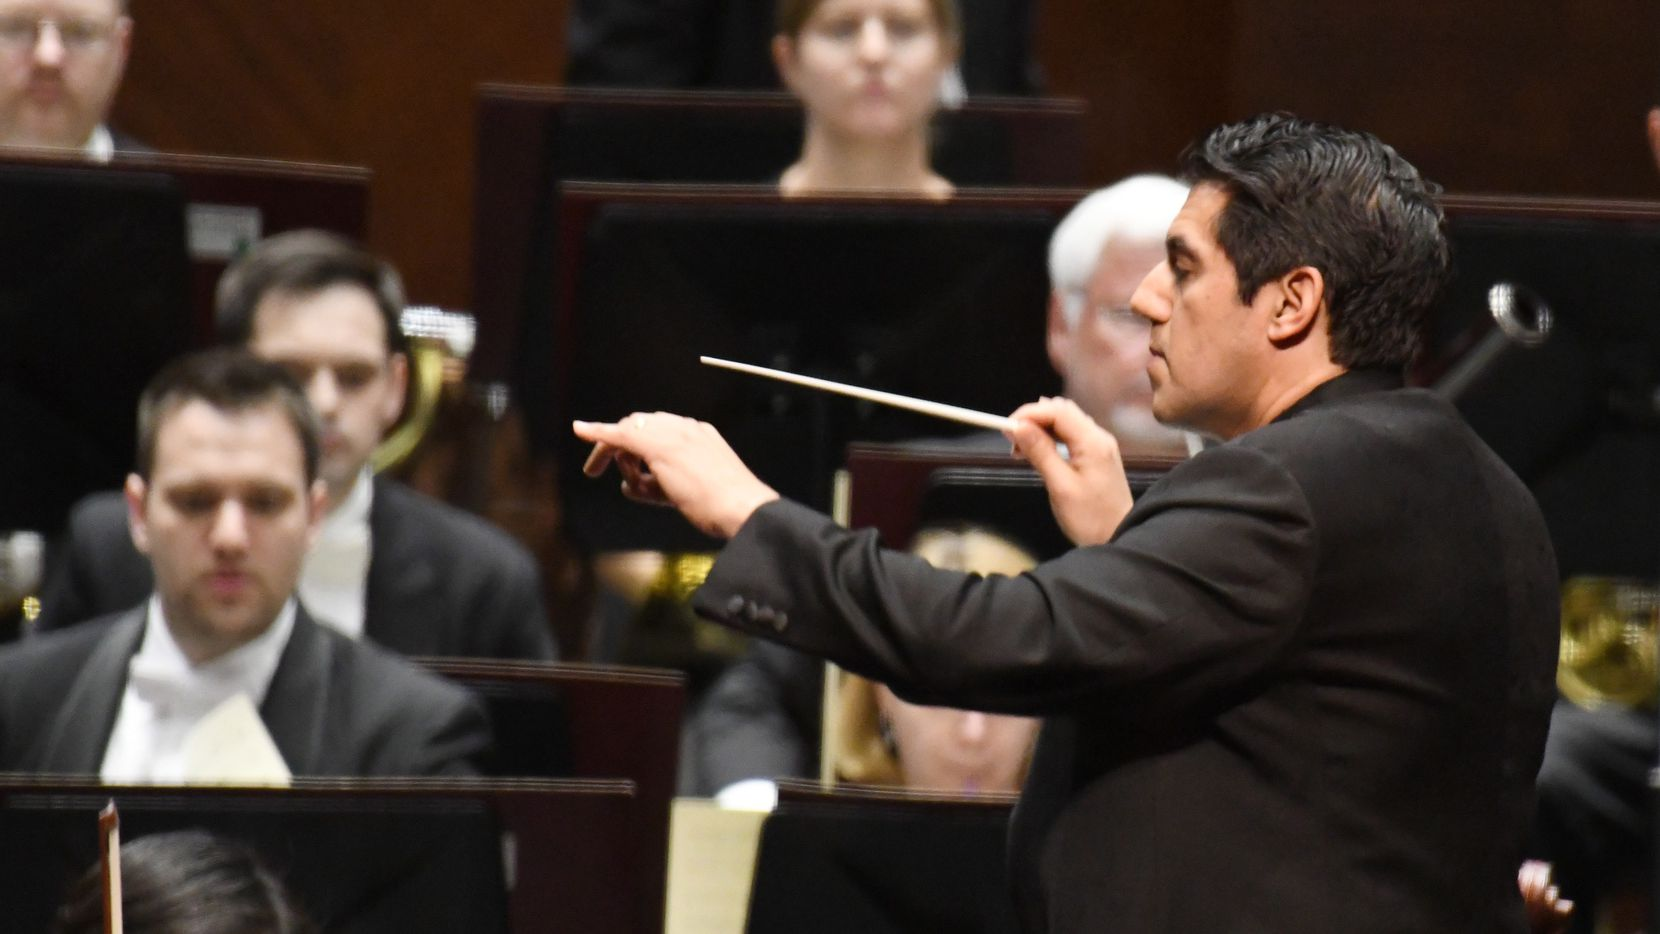 """Miguel Harth-Bedoya conducts the world premiere of Victor Agudelo's """"La Madre de Agua"""" with the Fort Worth Symphony Orchestra at the Bass Performance Hall on February 24, 2017 In Fort Worth, Texas. (Robert W. Hart/Special Contributor)"""